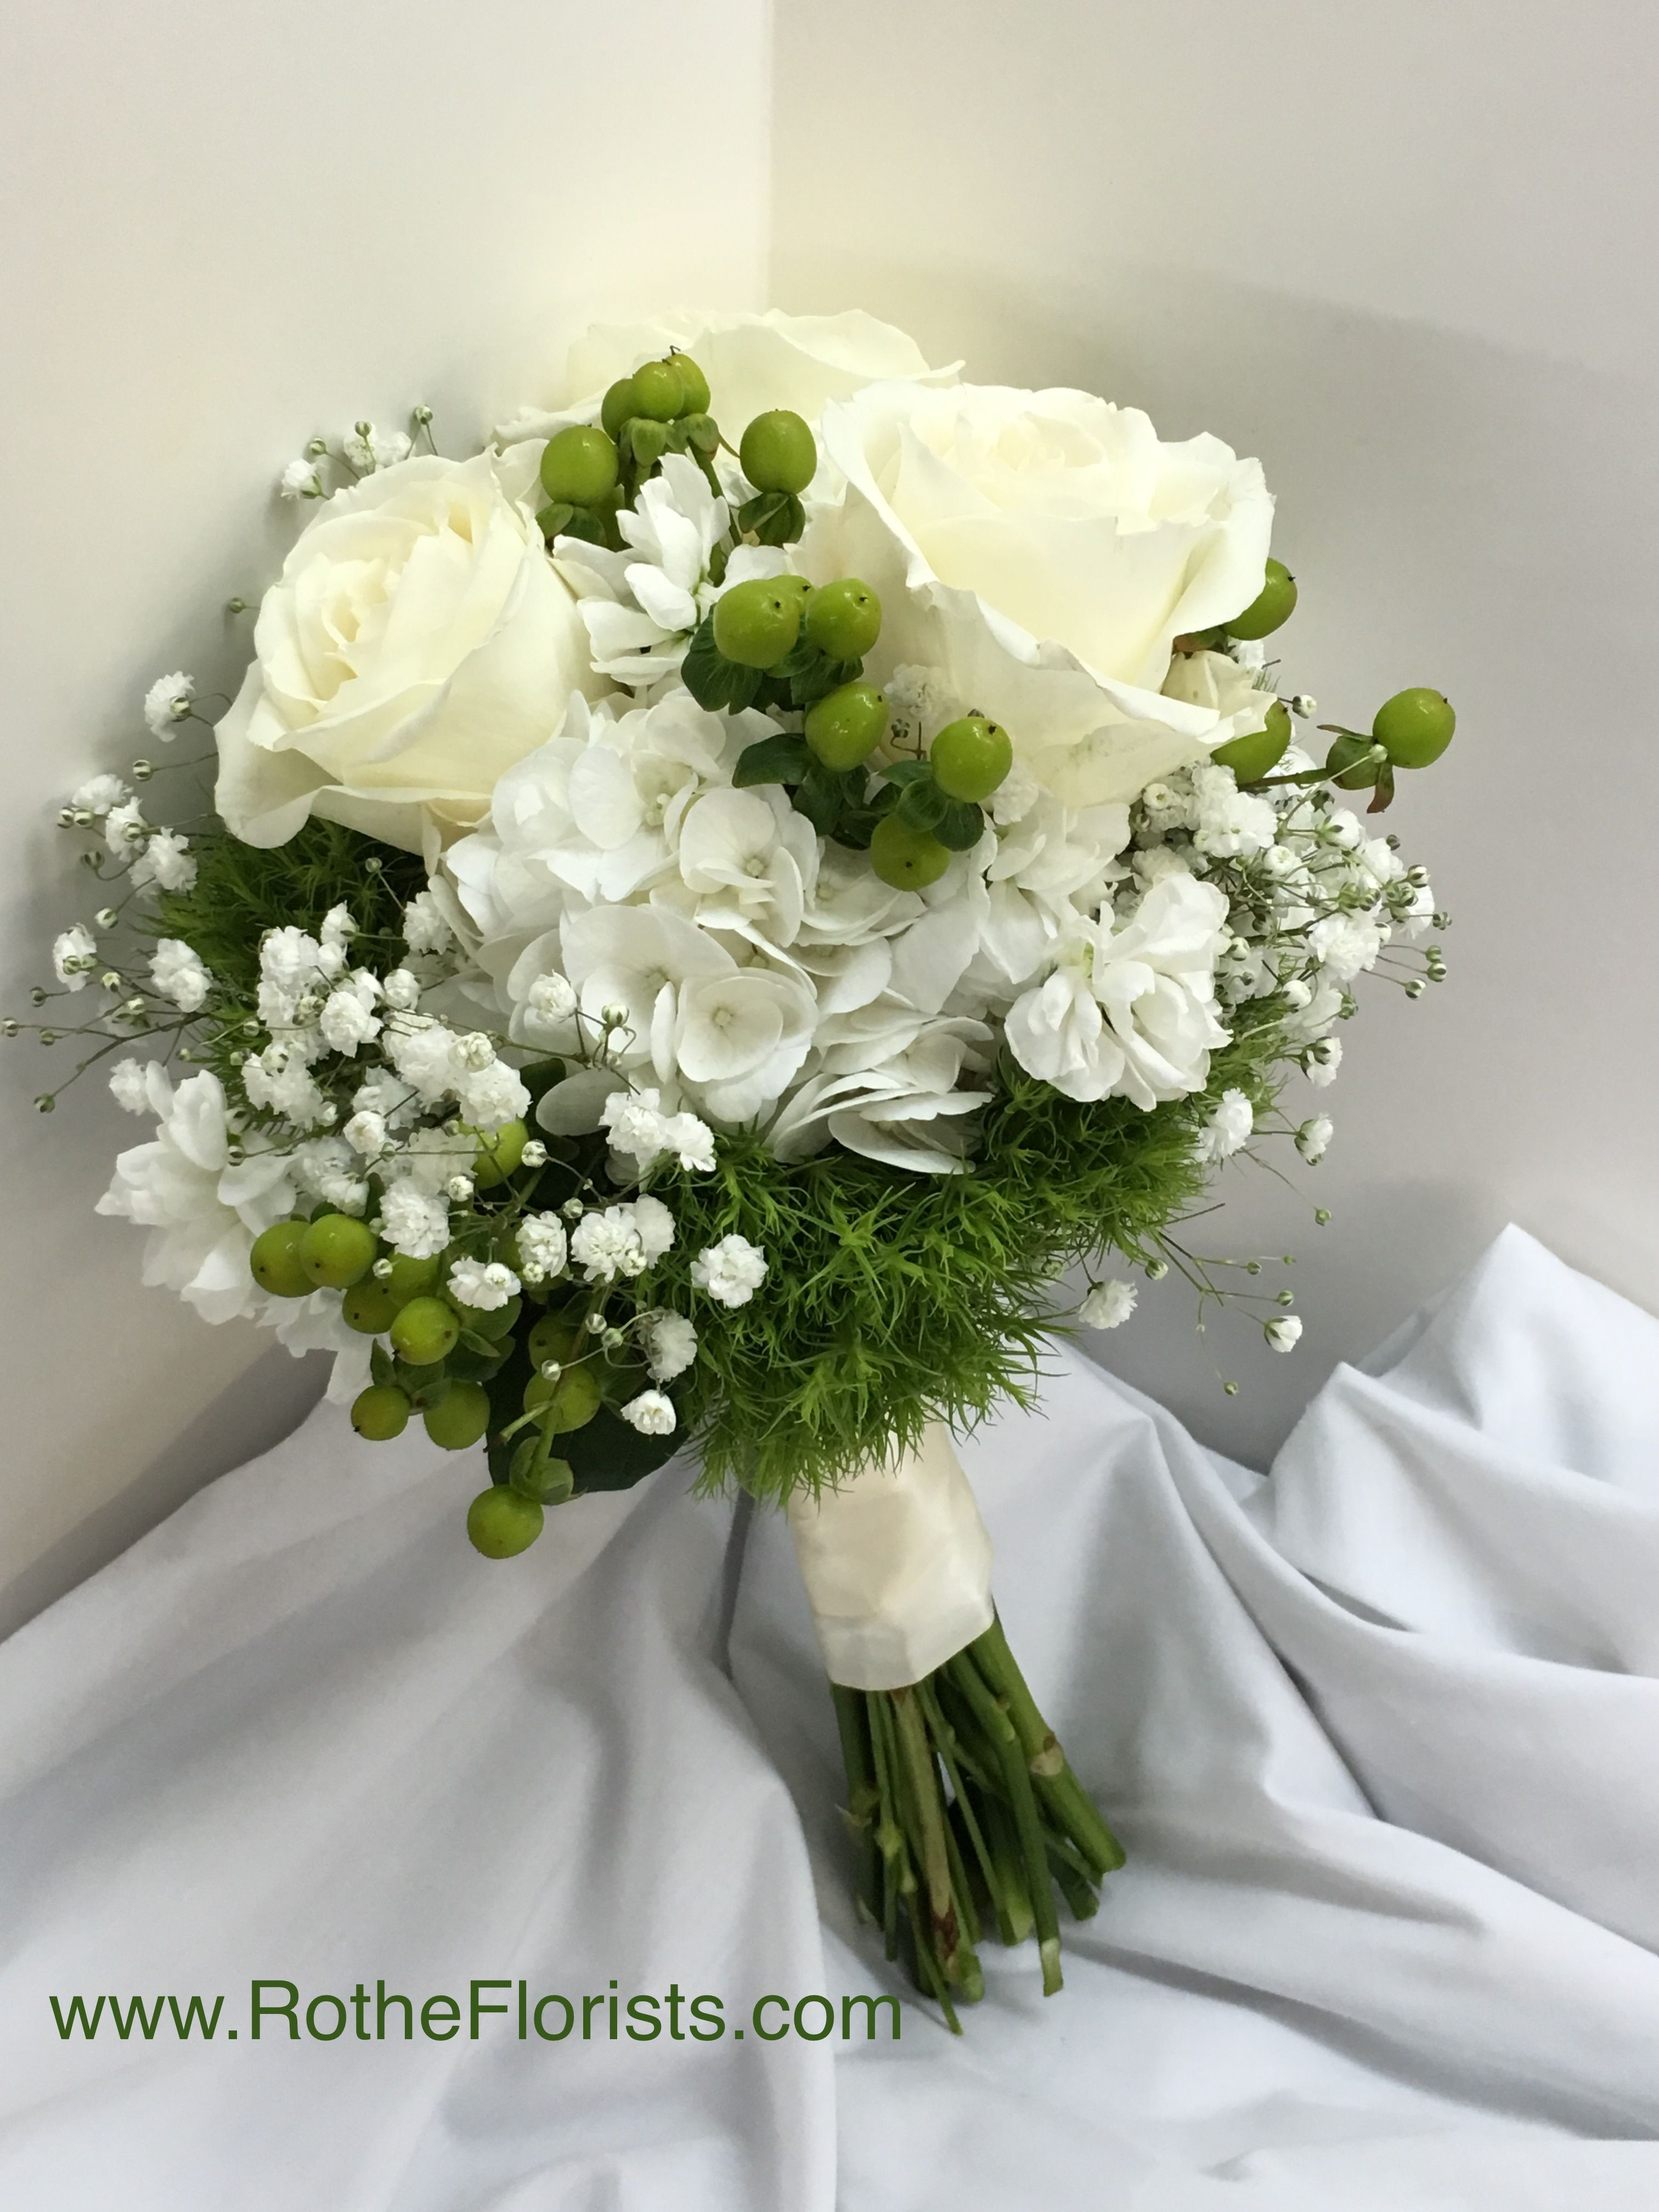 White Roses, Hydrangea, Baby's Breath, Green Hypericum, Tree